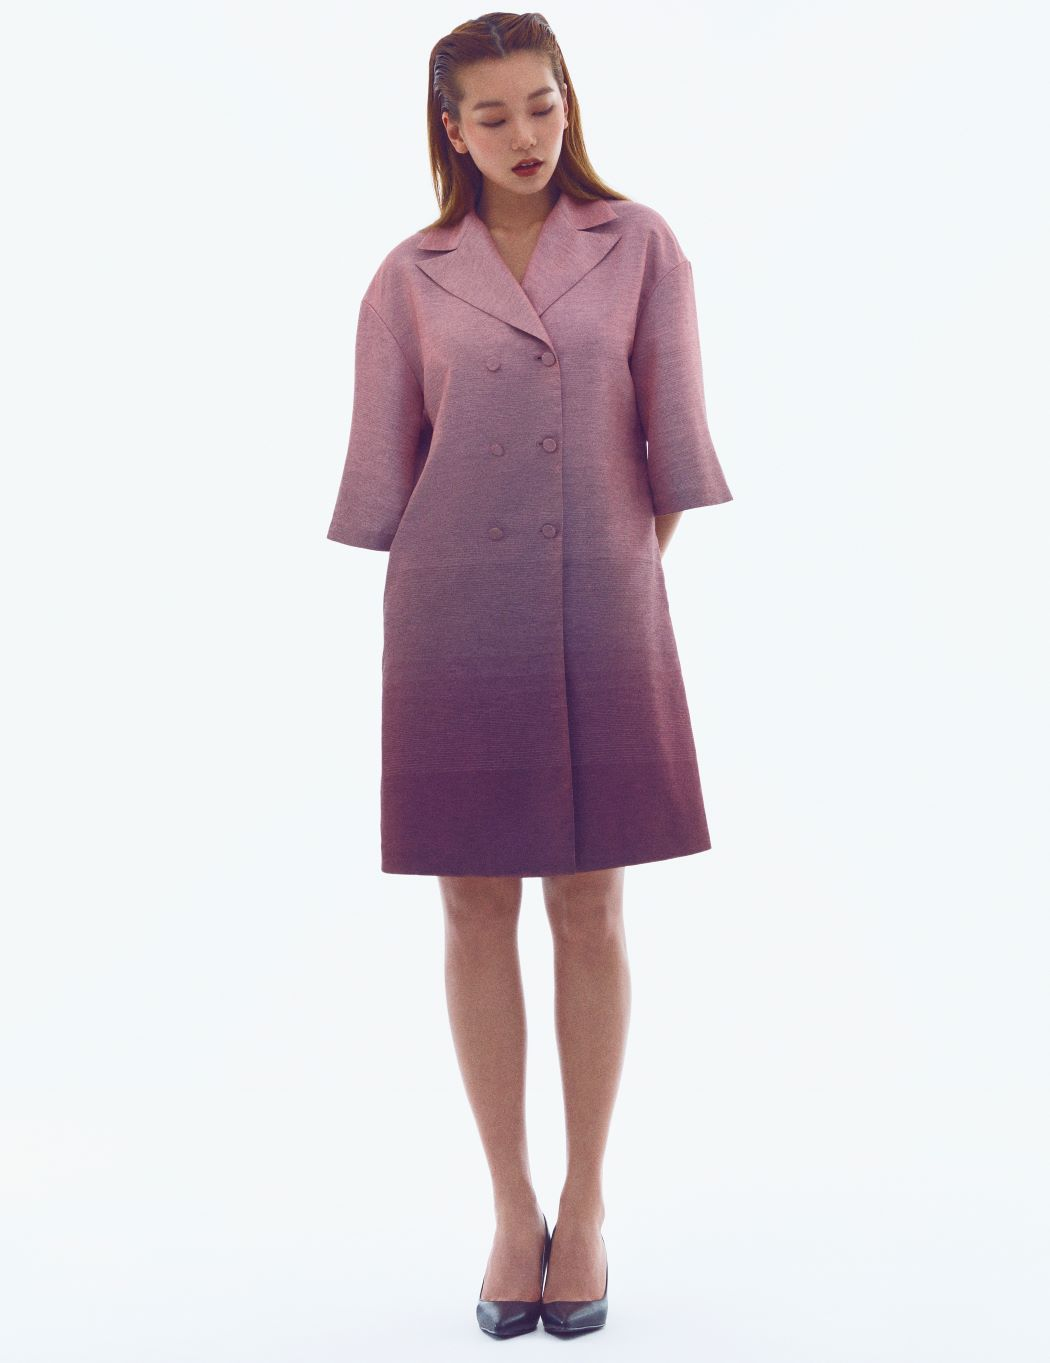 PINK GRADATION SHIRT-DRESS